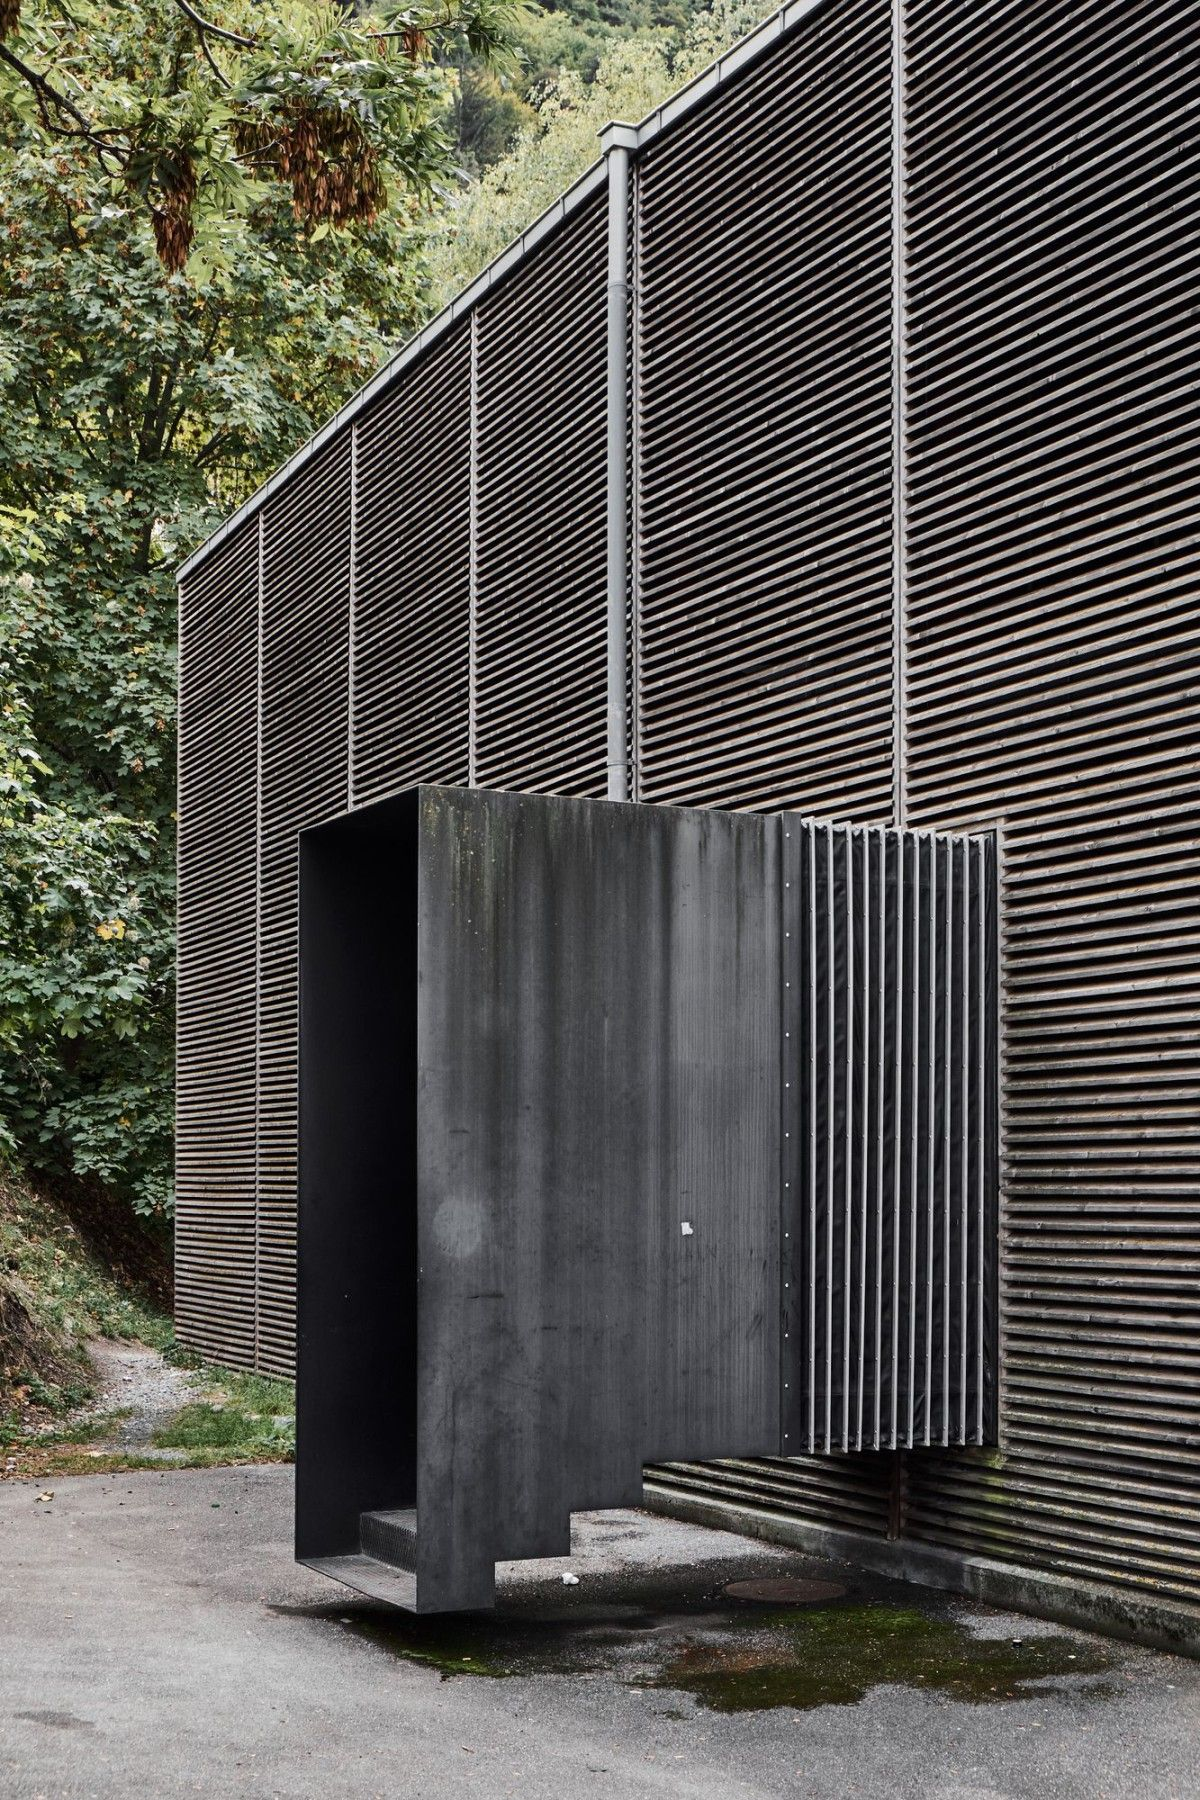 Peter Zumthor . Shelter for Roman Ruins . Chur (3) Peter